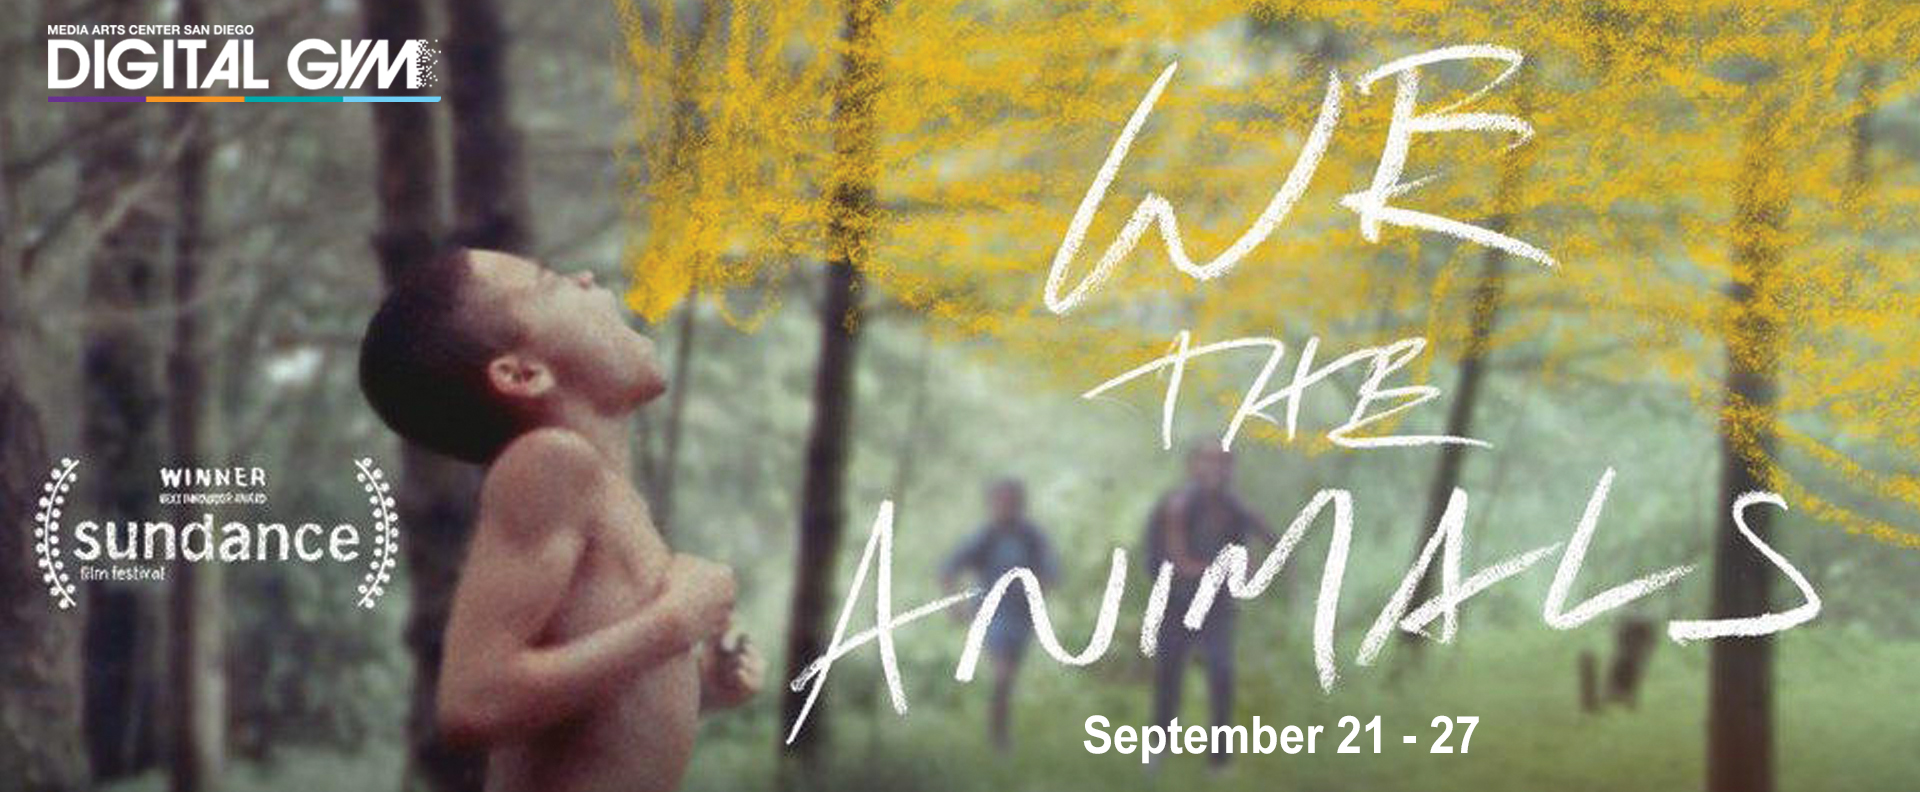 Last Chance Indies: We the Animals (September 21-27)